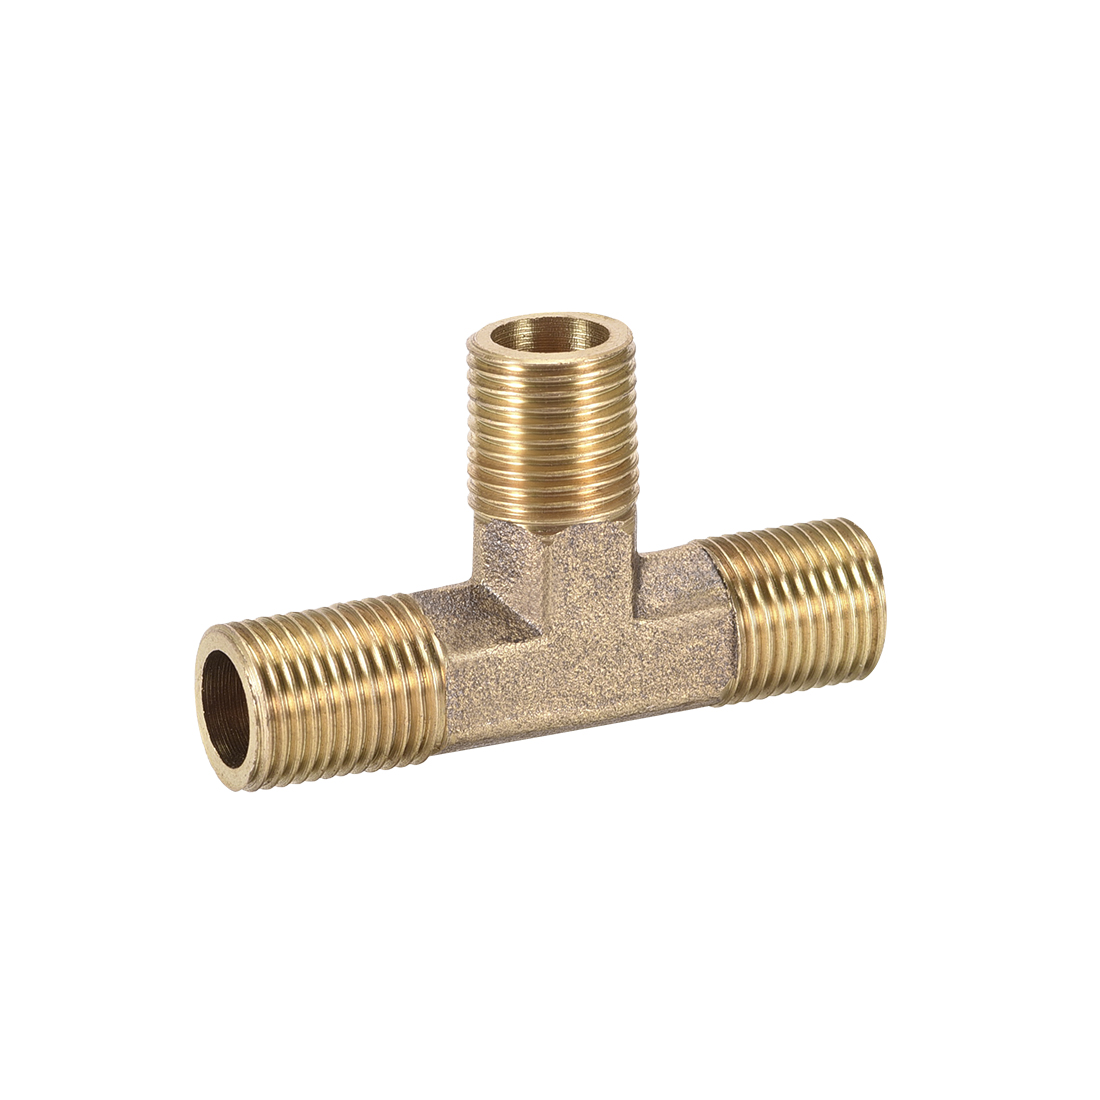 Brass Tee Pipe Fitting 1/8NPT Male Thread T Shaped Connector Coupler